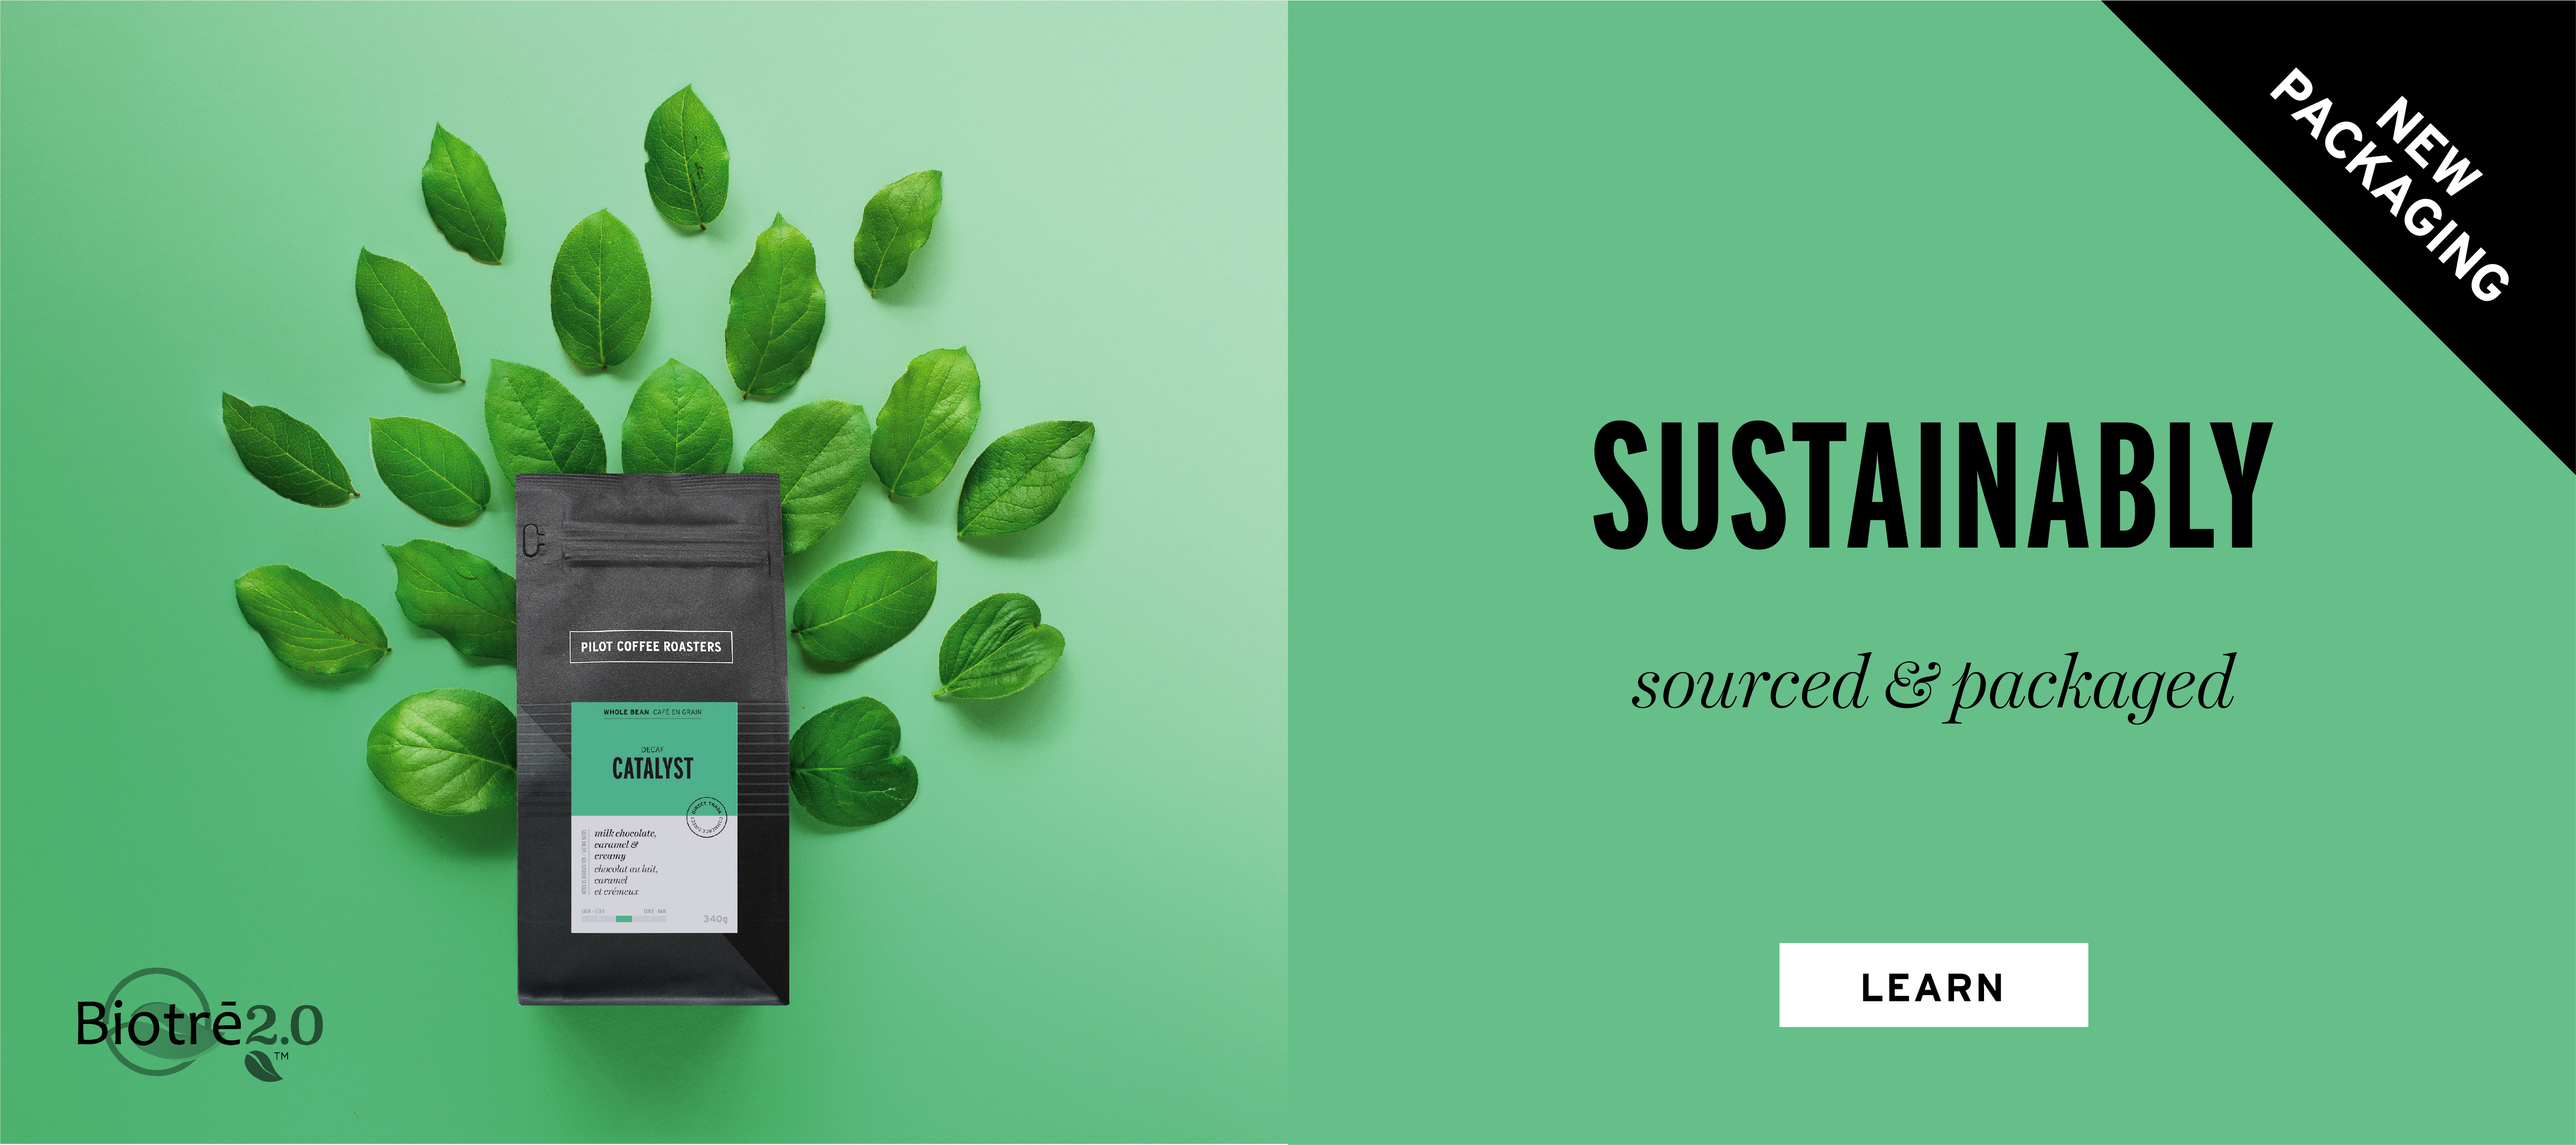 Introducing our new fully bilingual and sustainable packaging